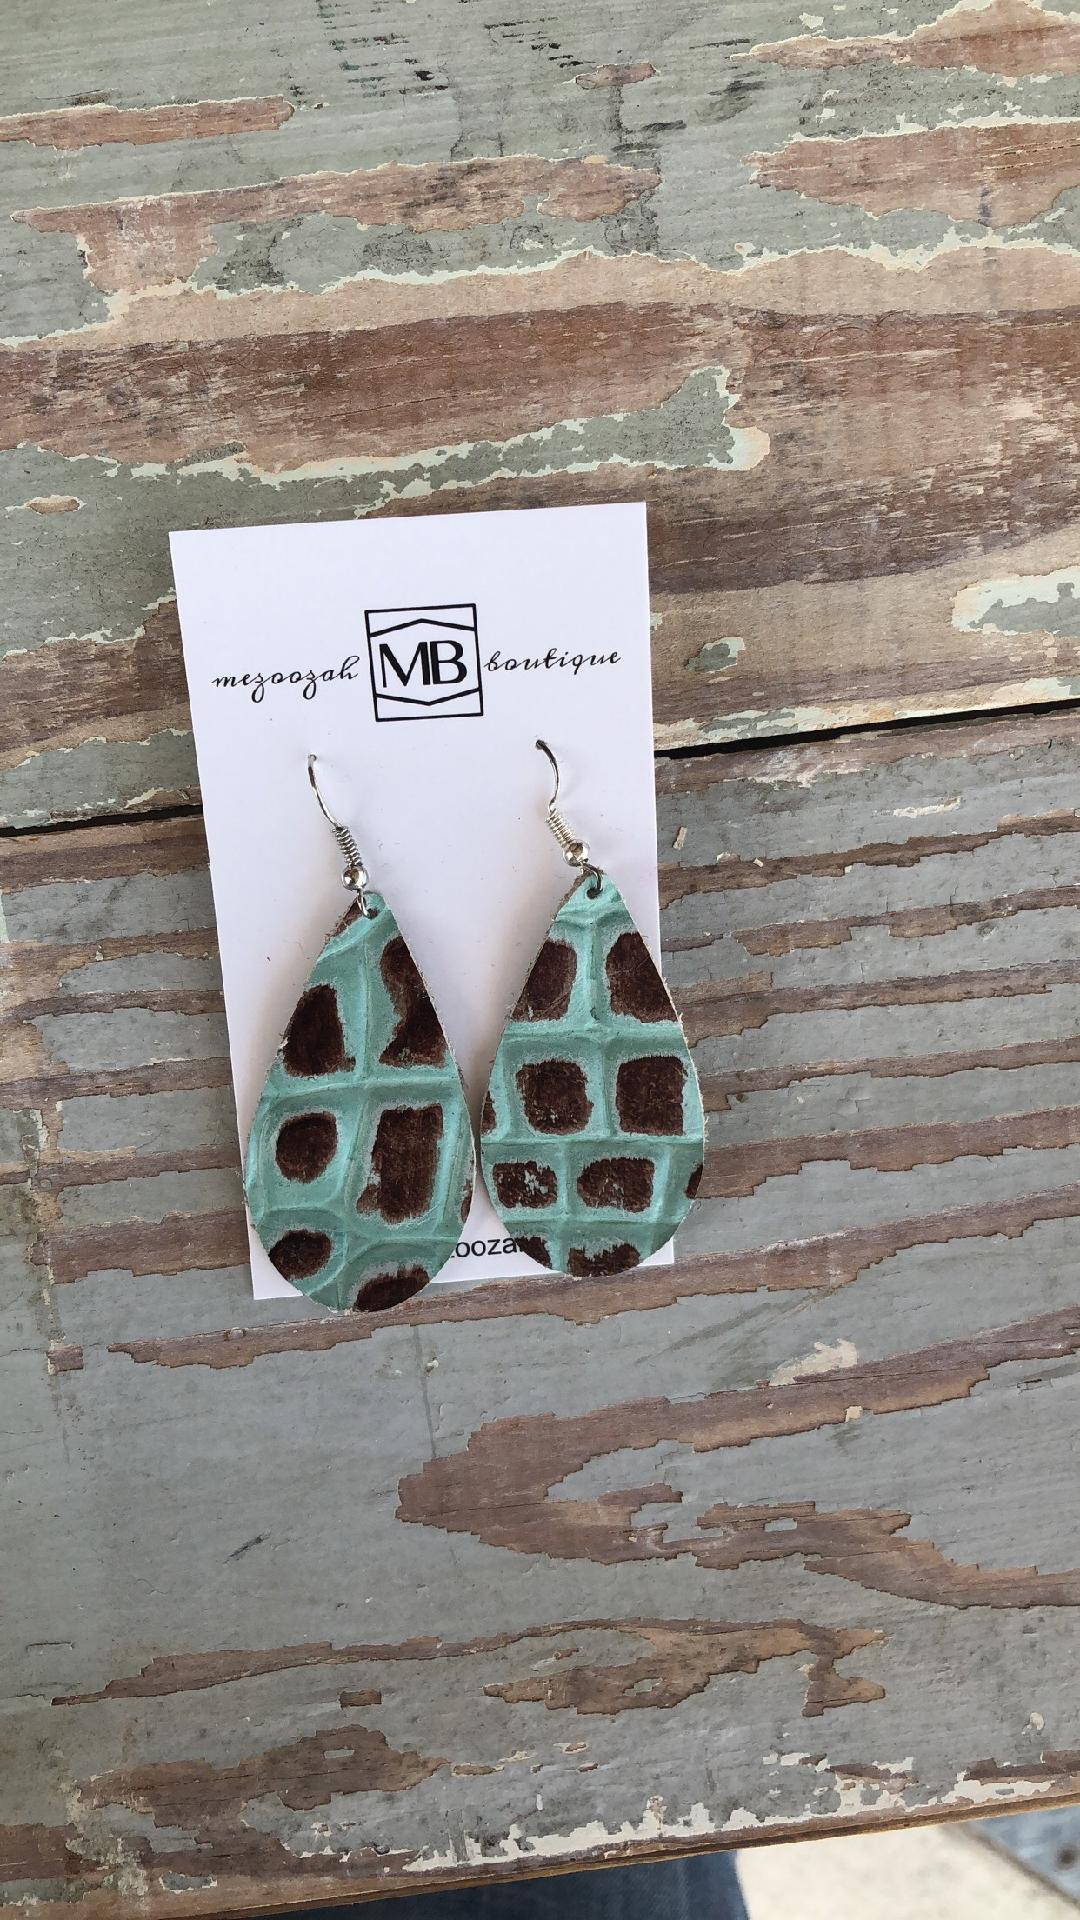 Mint Chocolate Chip Croc Earrings